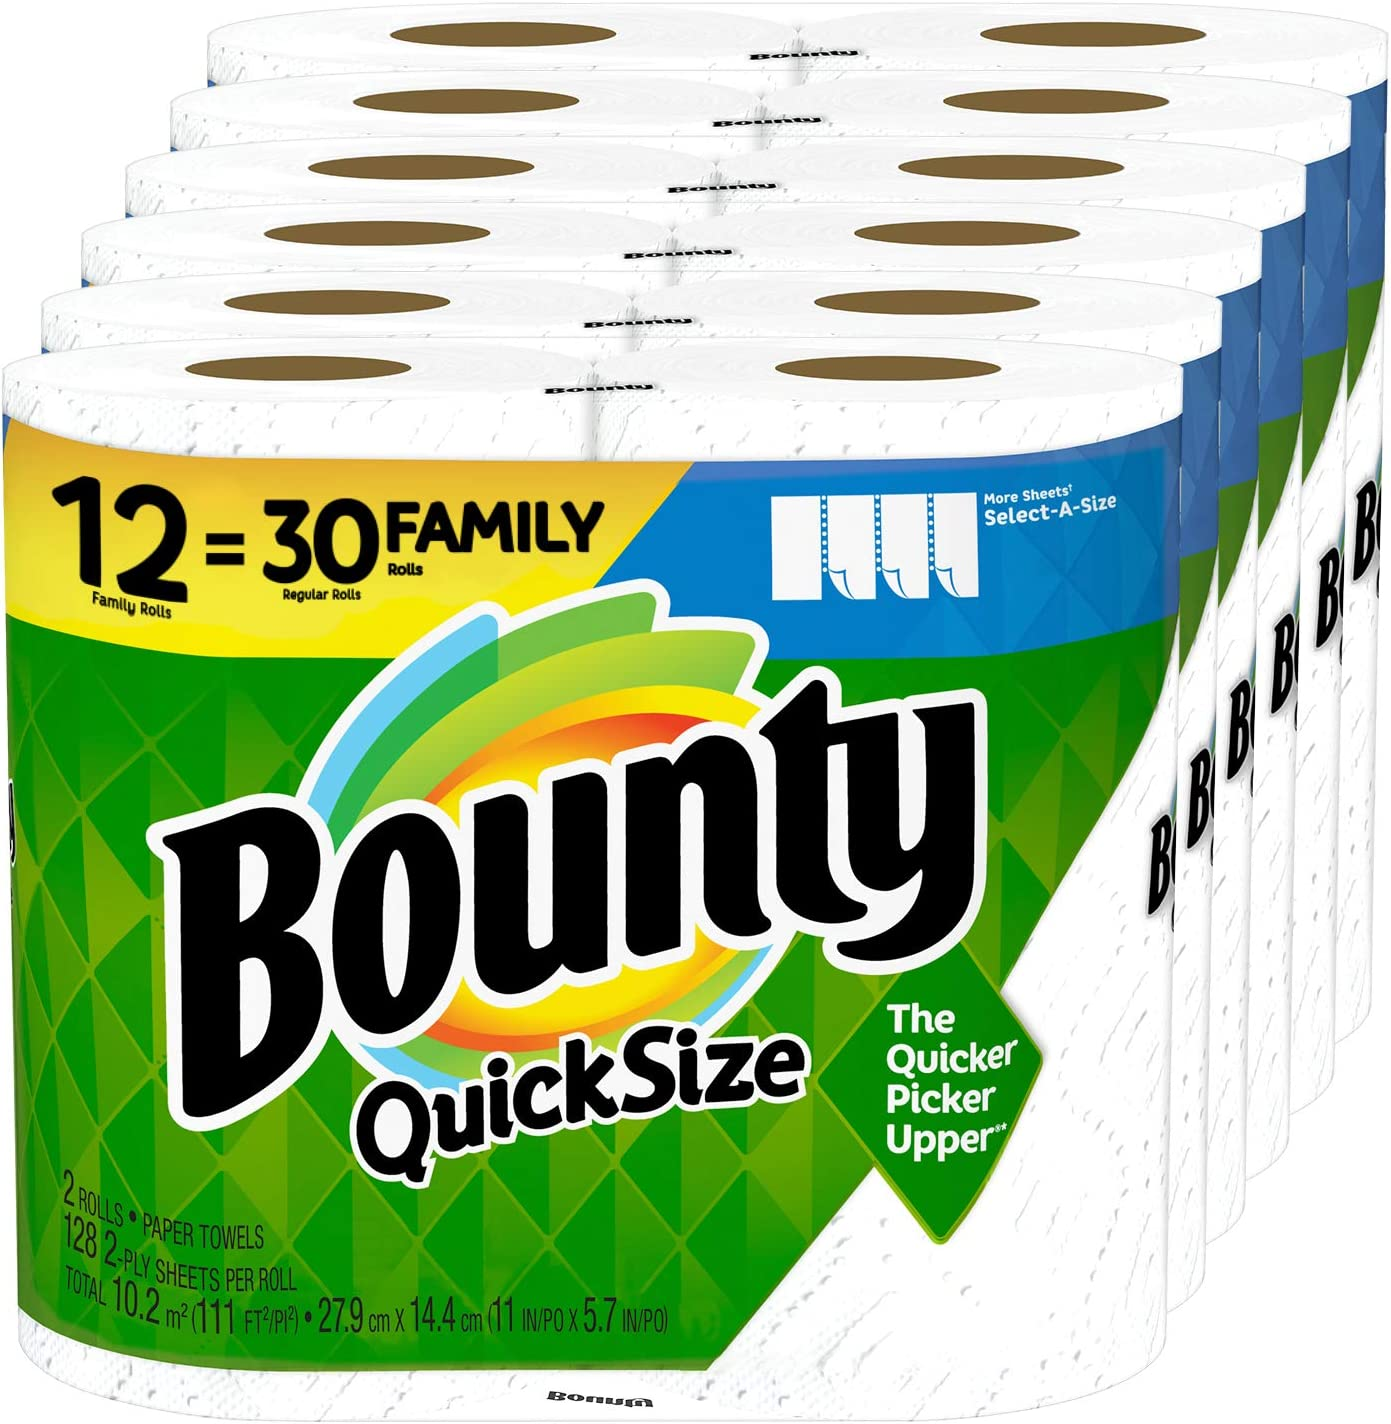 Amazon Com Bounty Quick Size Paper Towels 12 Family Rolls 30 Regular Rolls Health Personal Care